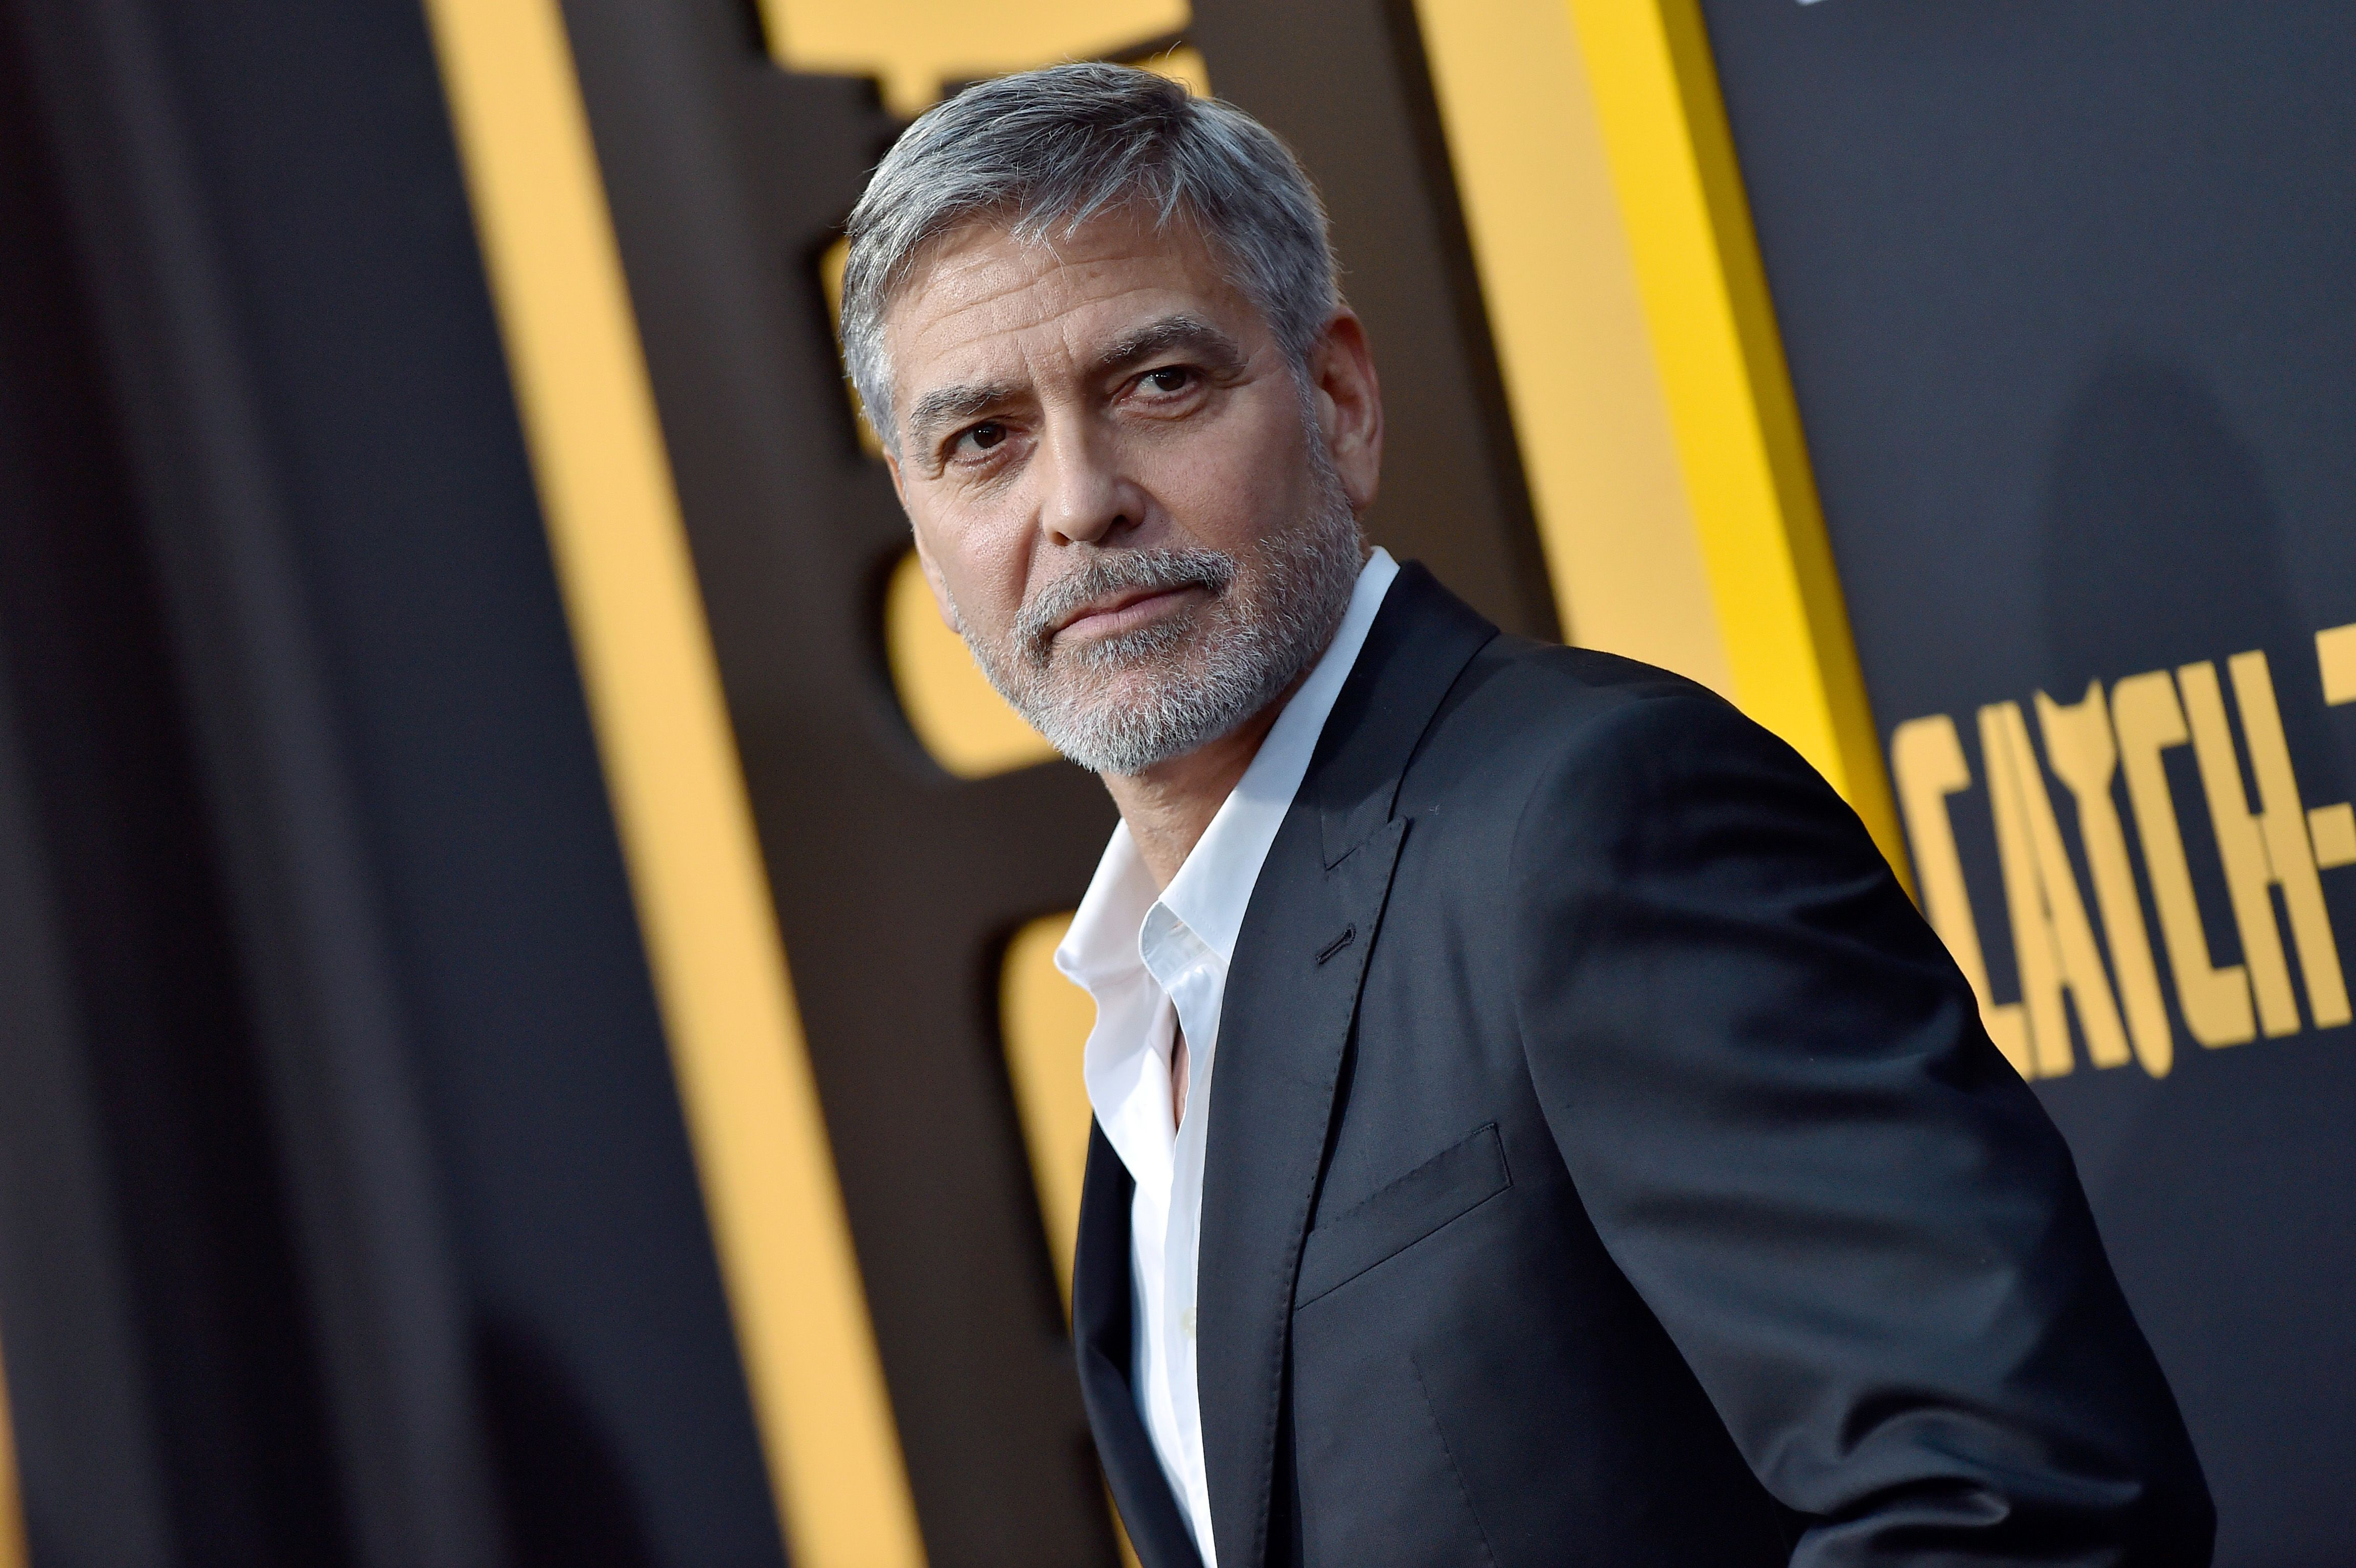 George Clooney dirigirá 'Good Morning, Midnight' para Netflix